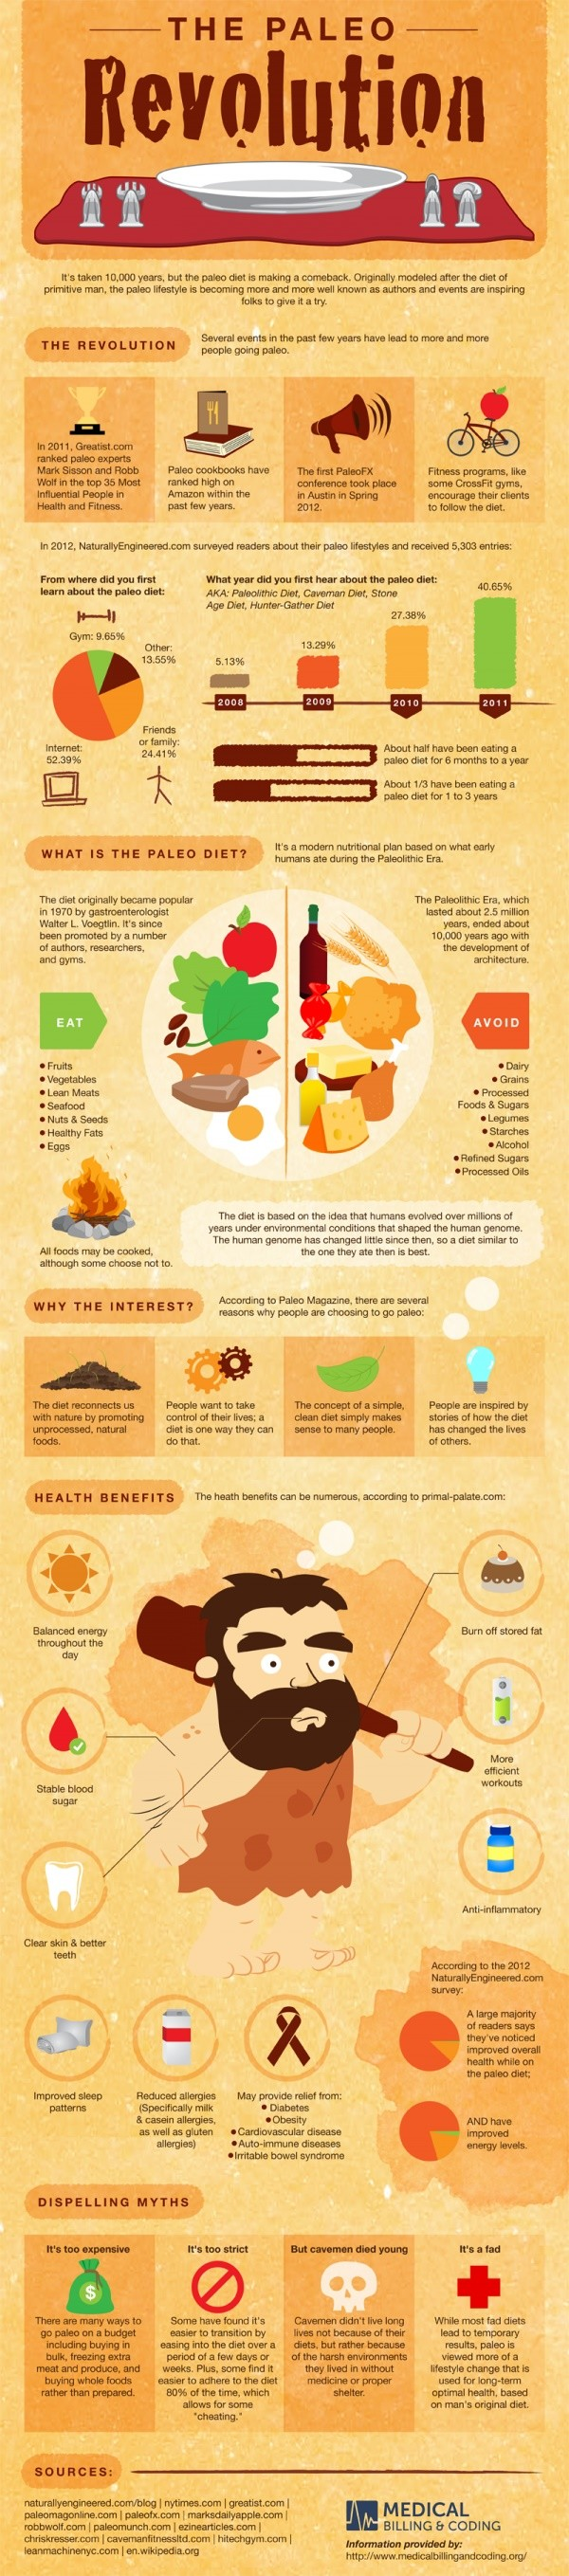 The paleo revolution infographic